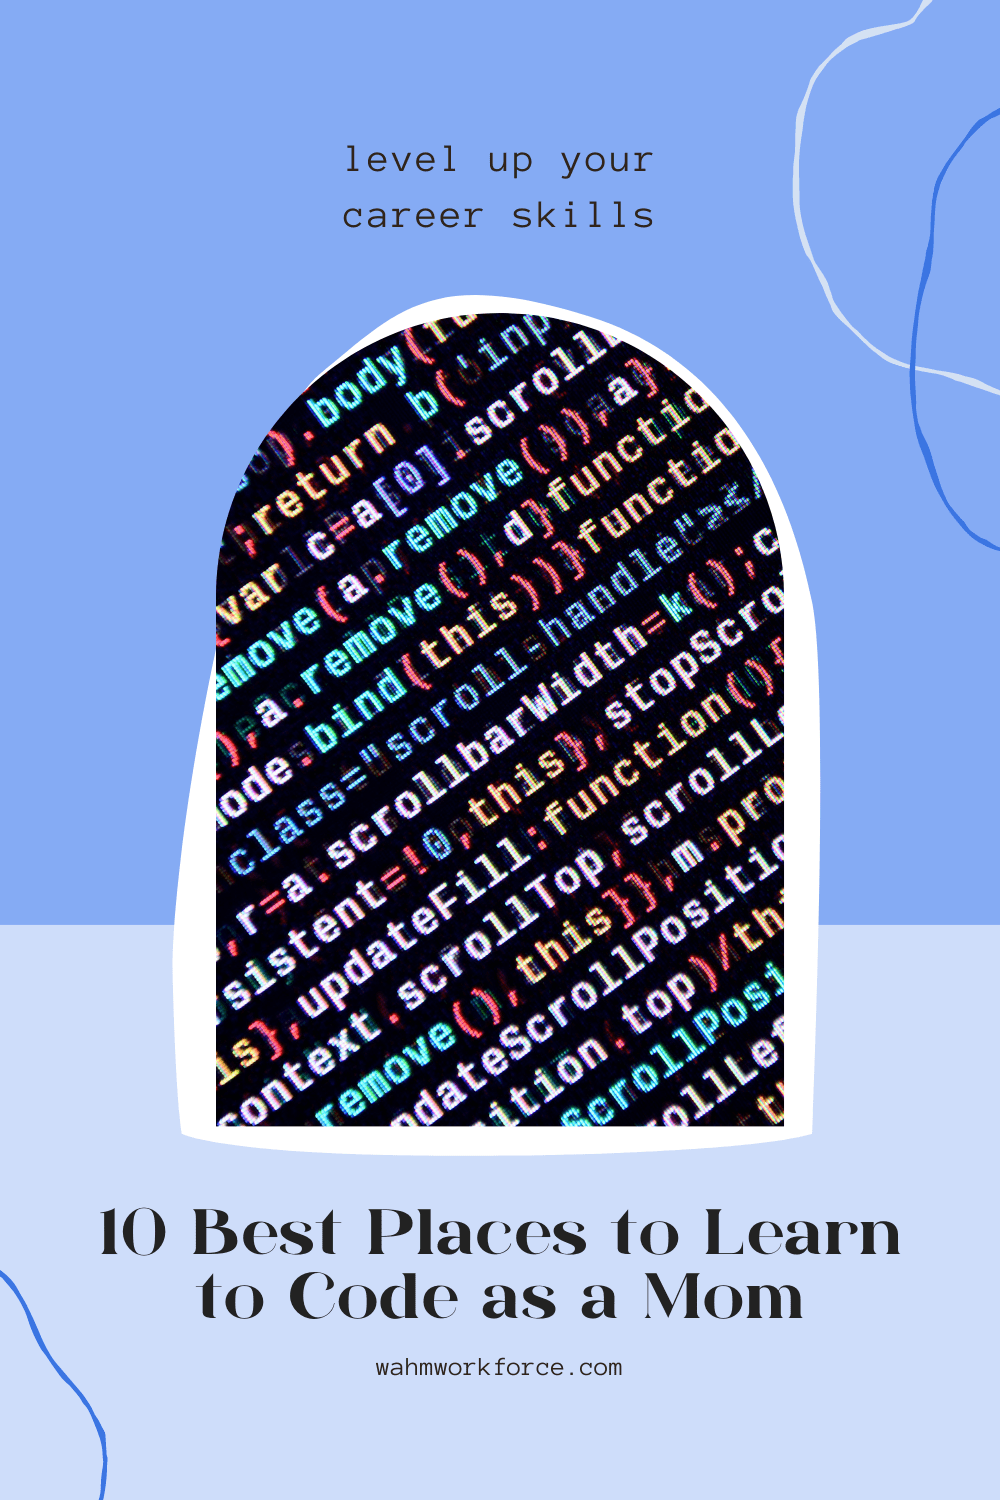 10 Places to Learn to Code Online Even if you Have No Experience (Free + Paid Options)